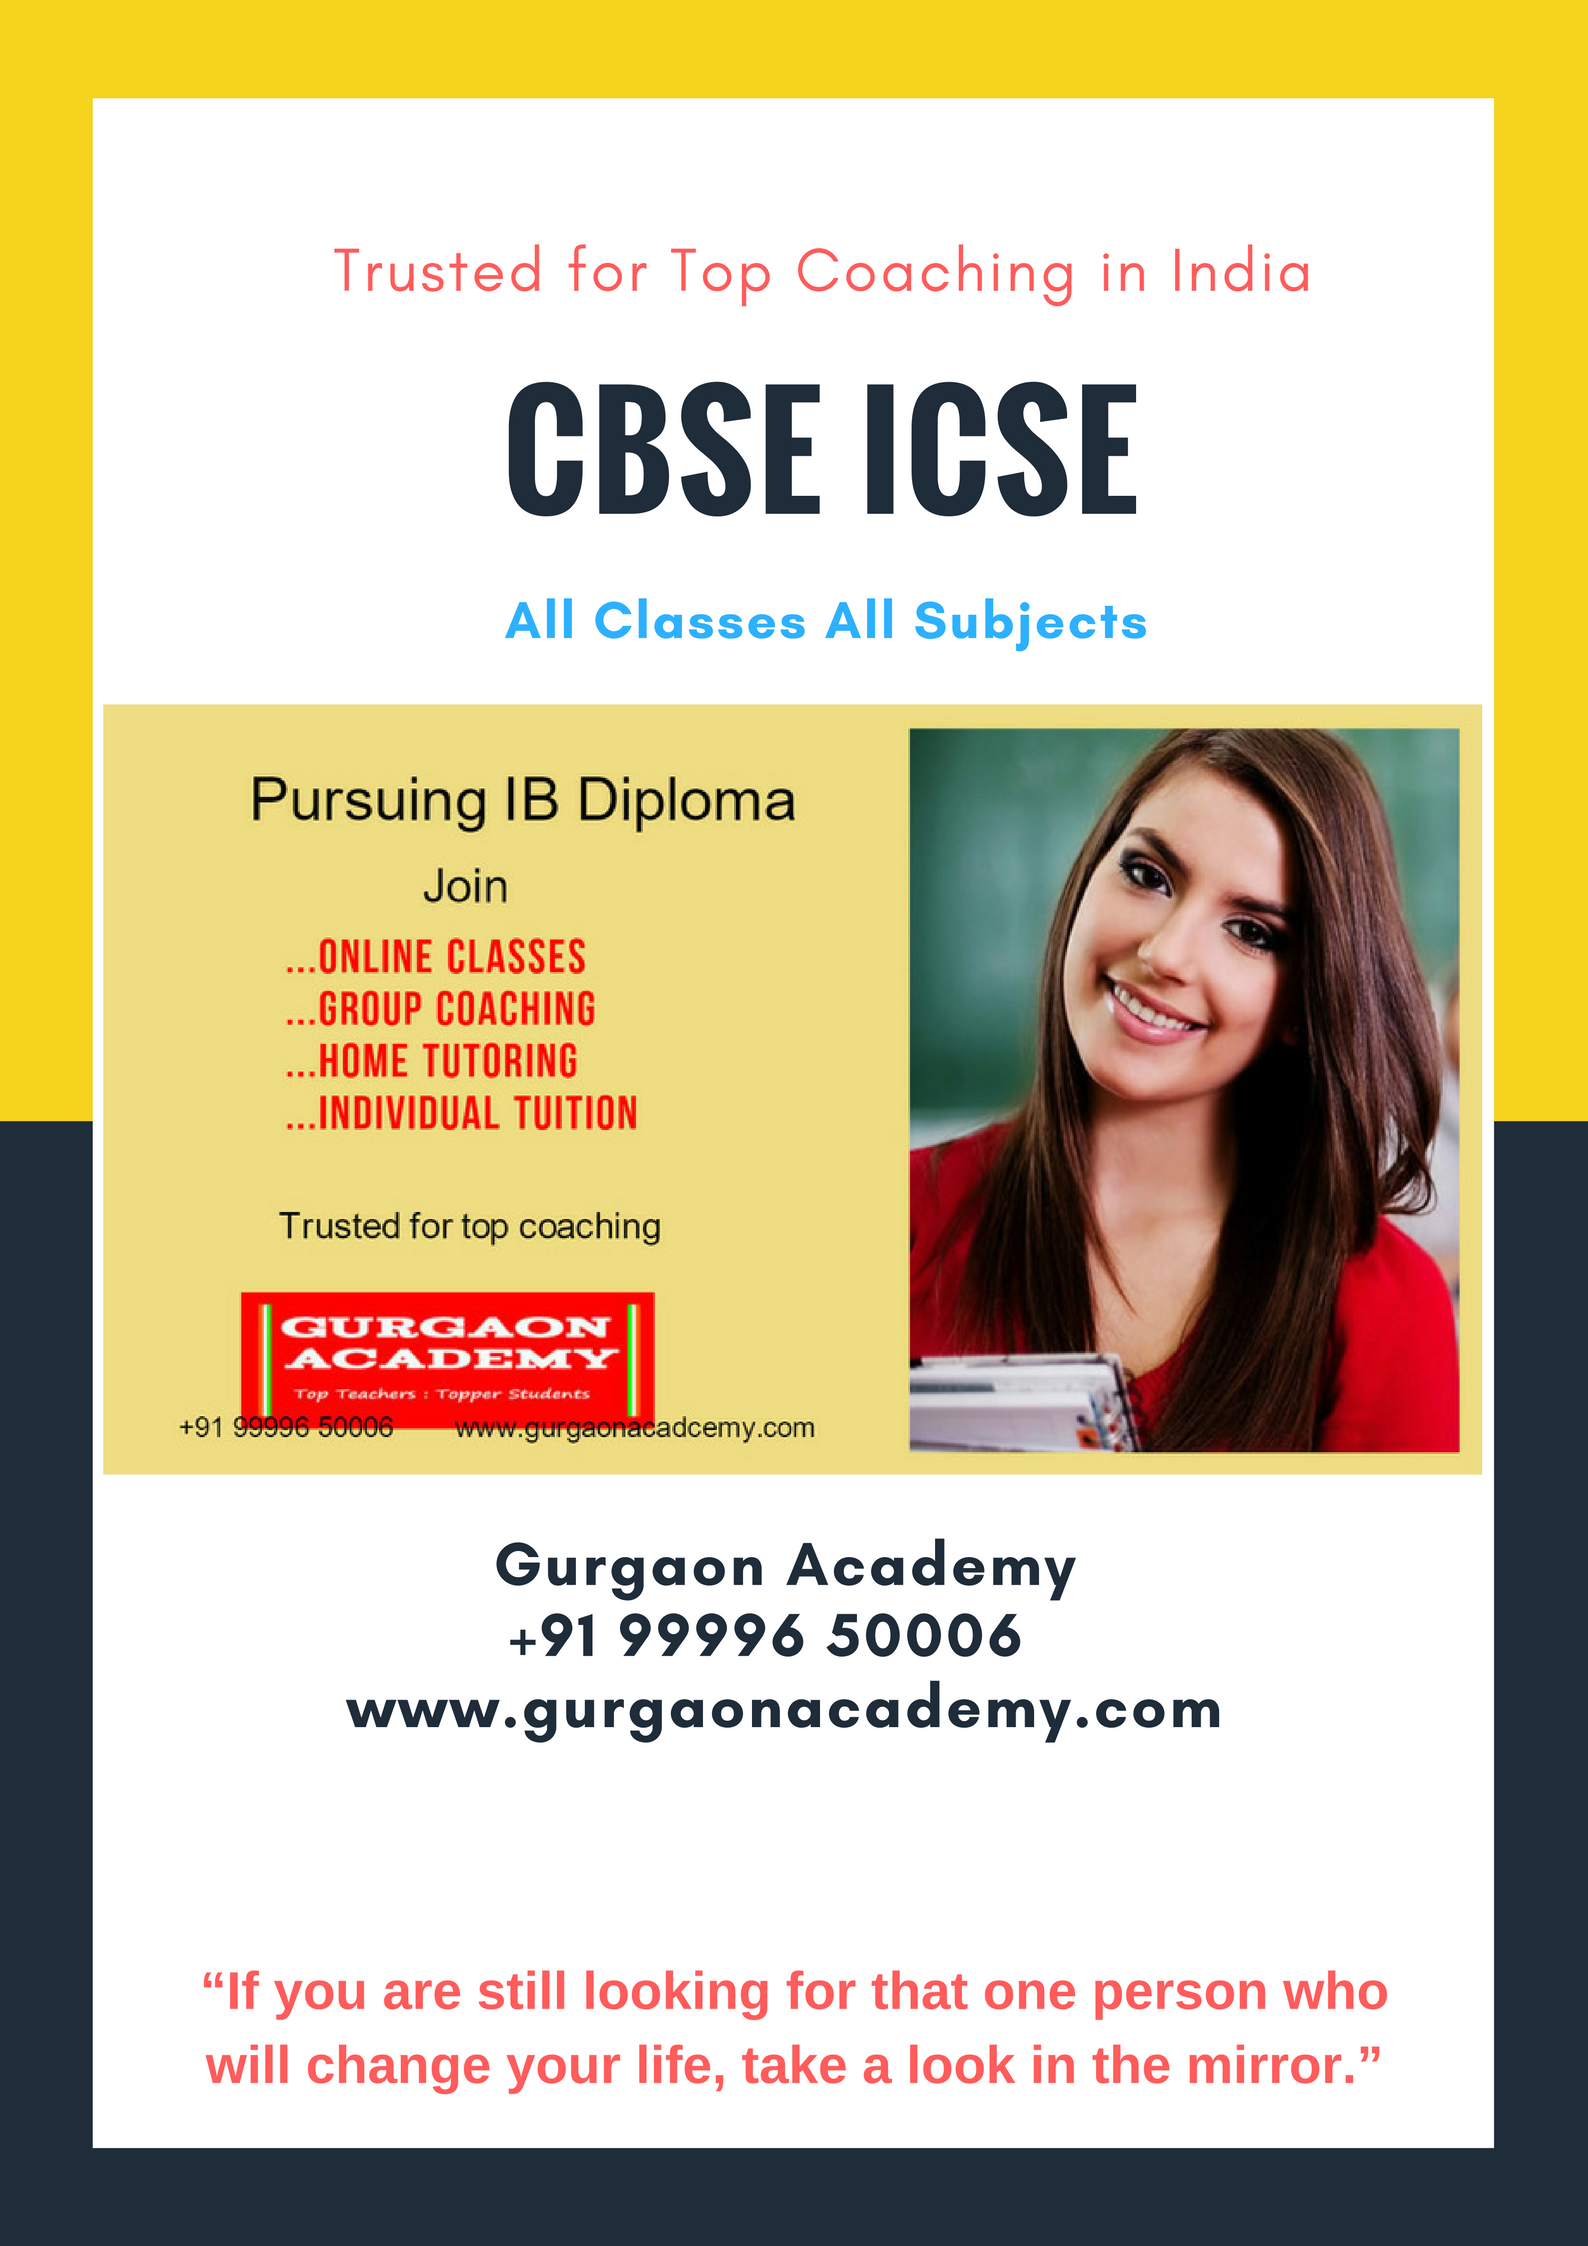 CBSE IGCSE IBDP MYP ICSE Institute(99996 50006):Gurgaon Academy Coaching Institute Tuition Teacher Learning Centre for All Subject in Gurugram